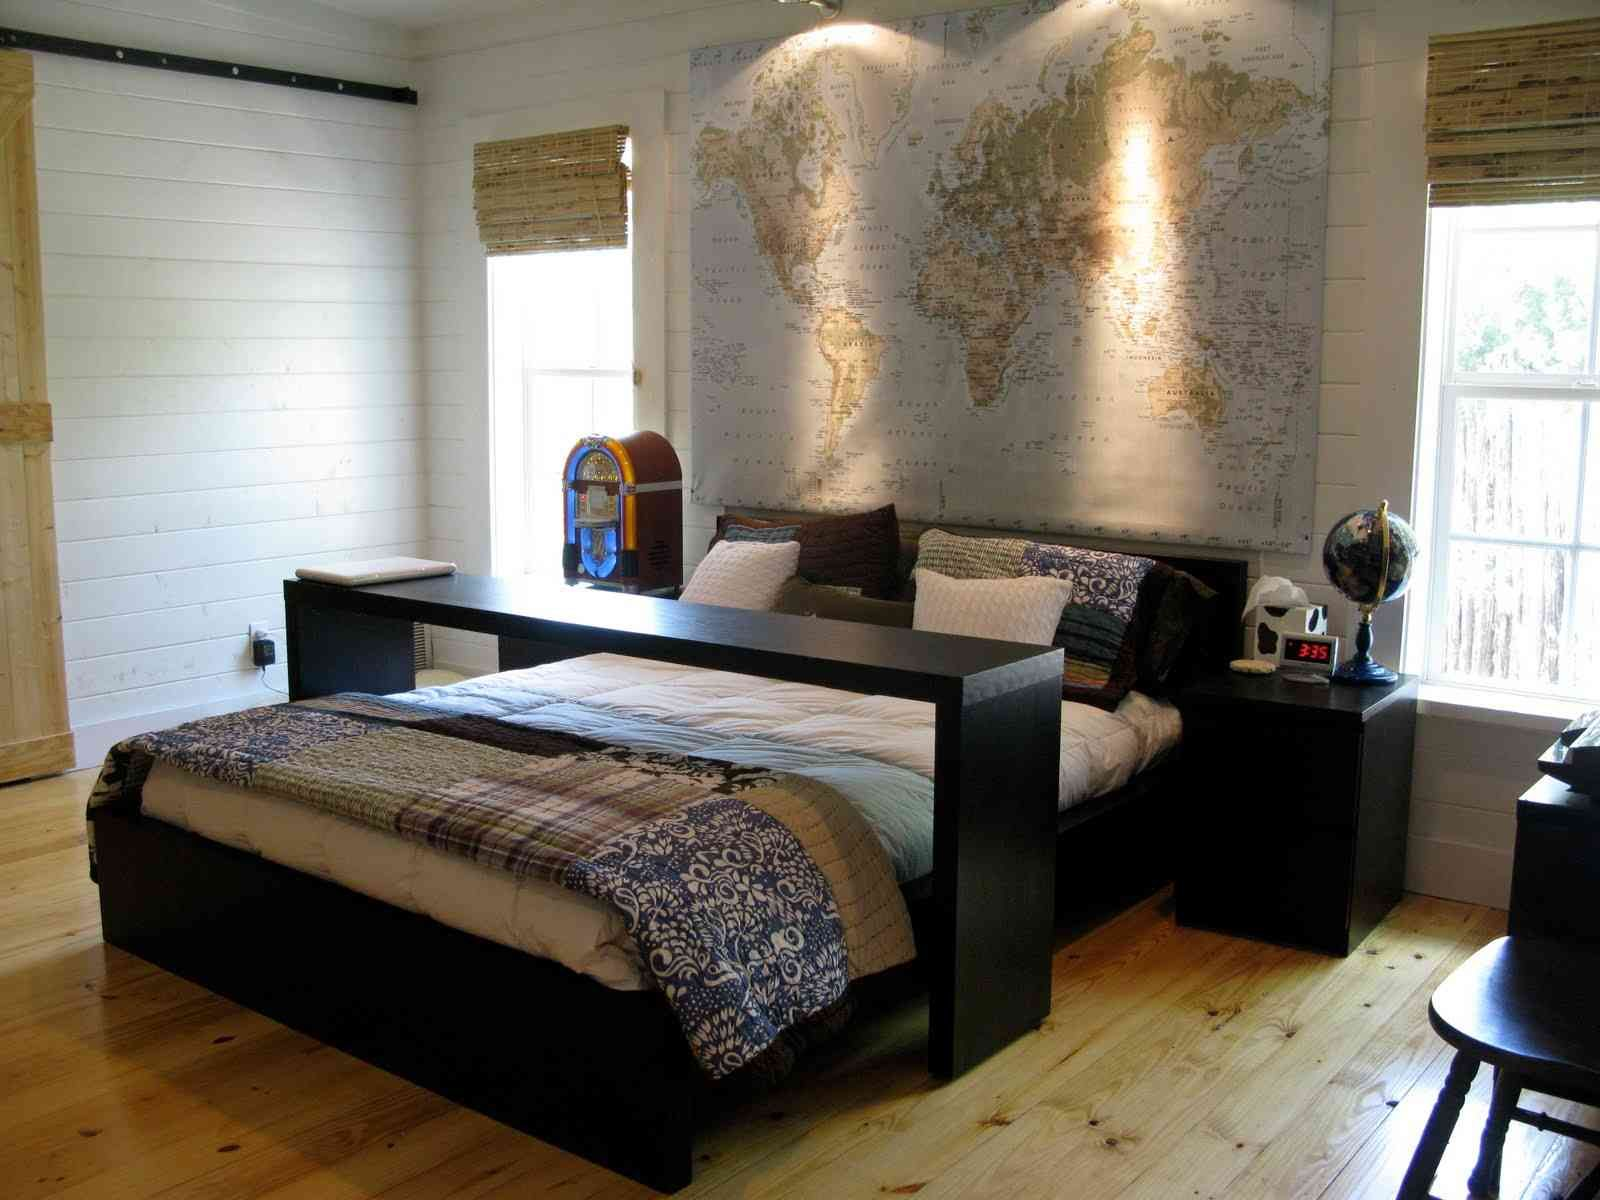 126 best images about ikea bedrooms on pinterest - Bedroom Idea Ikea